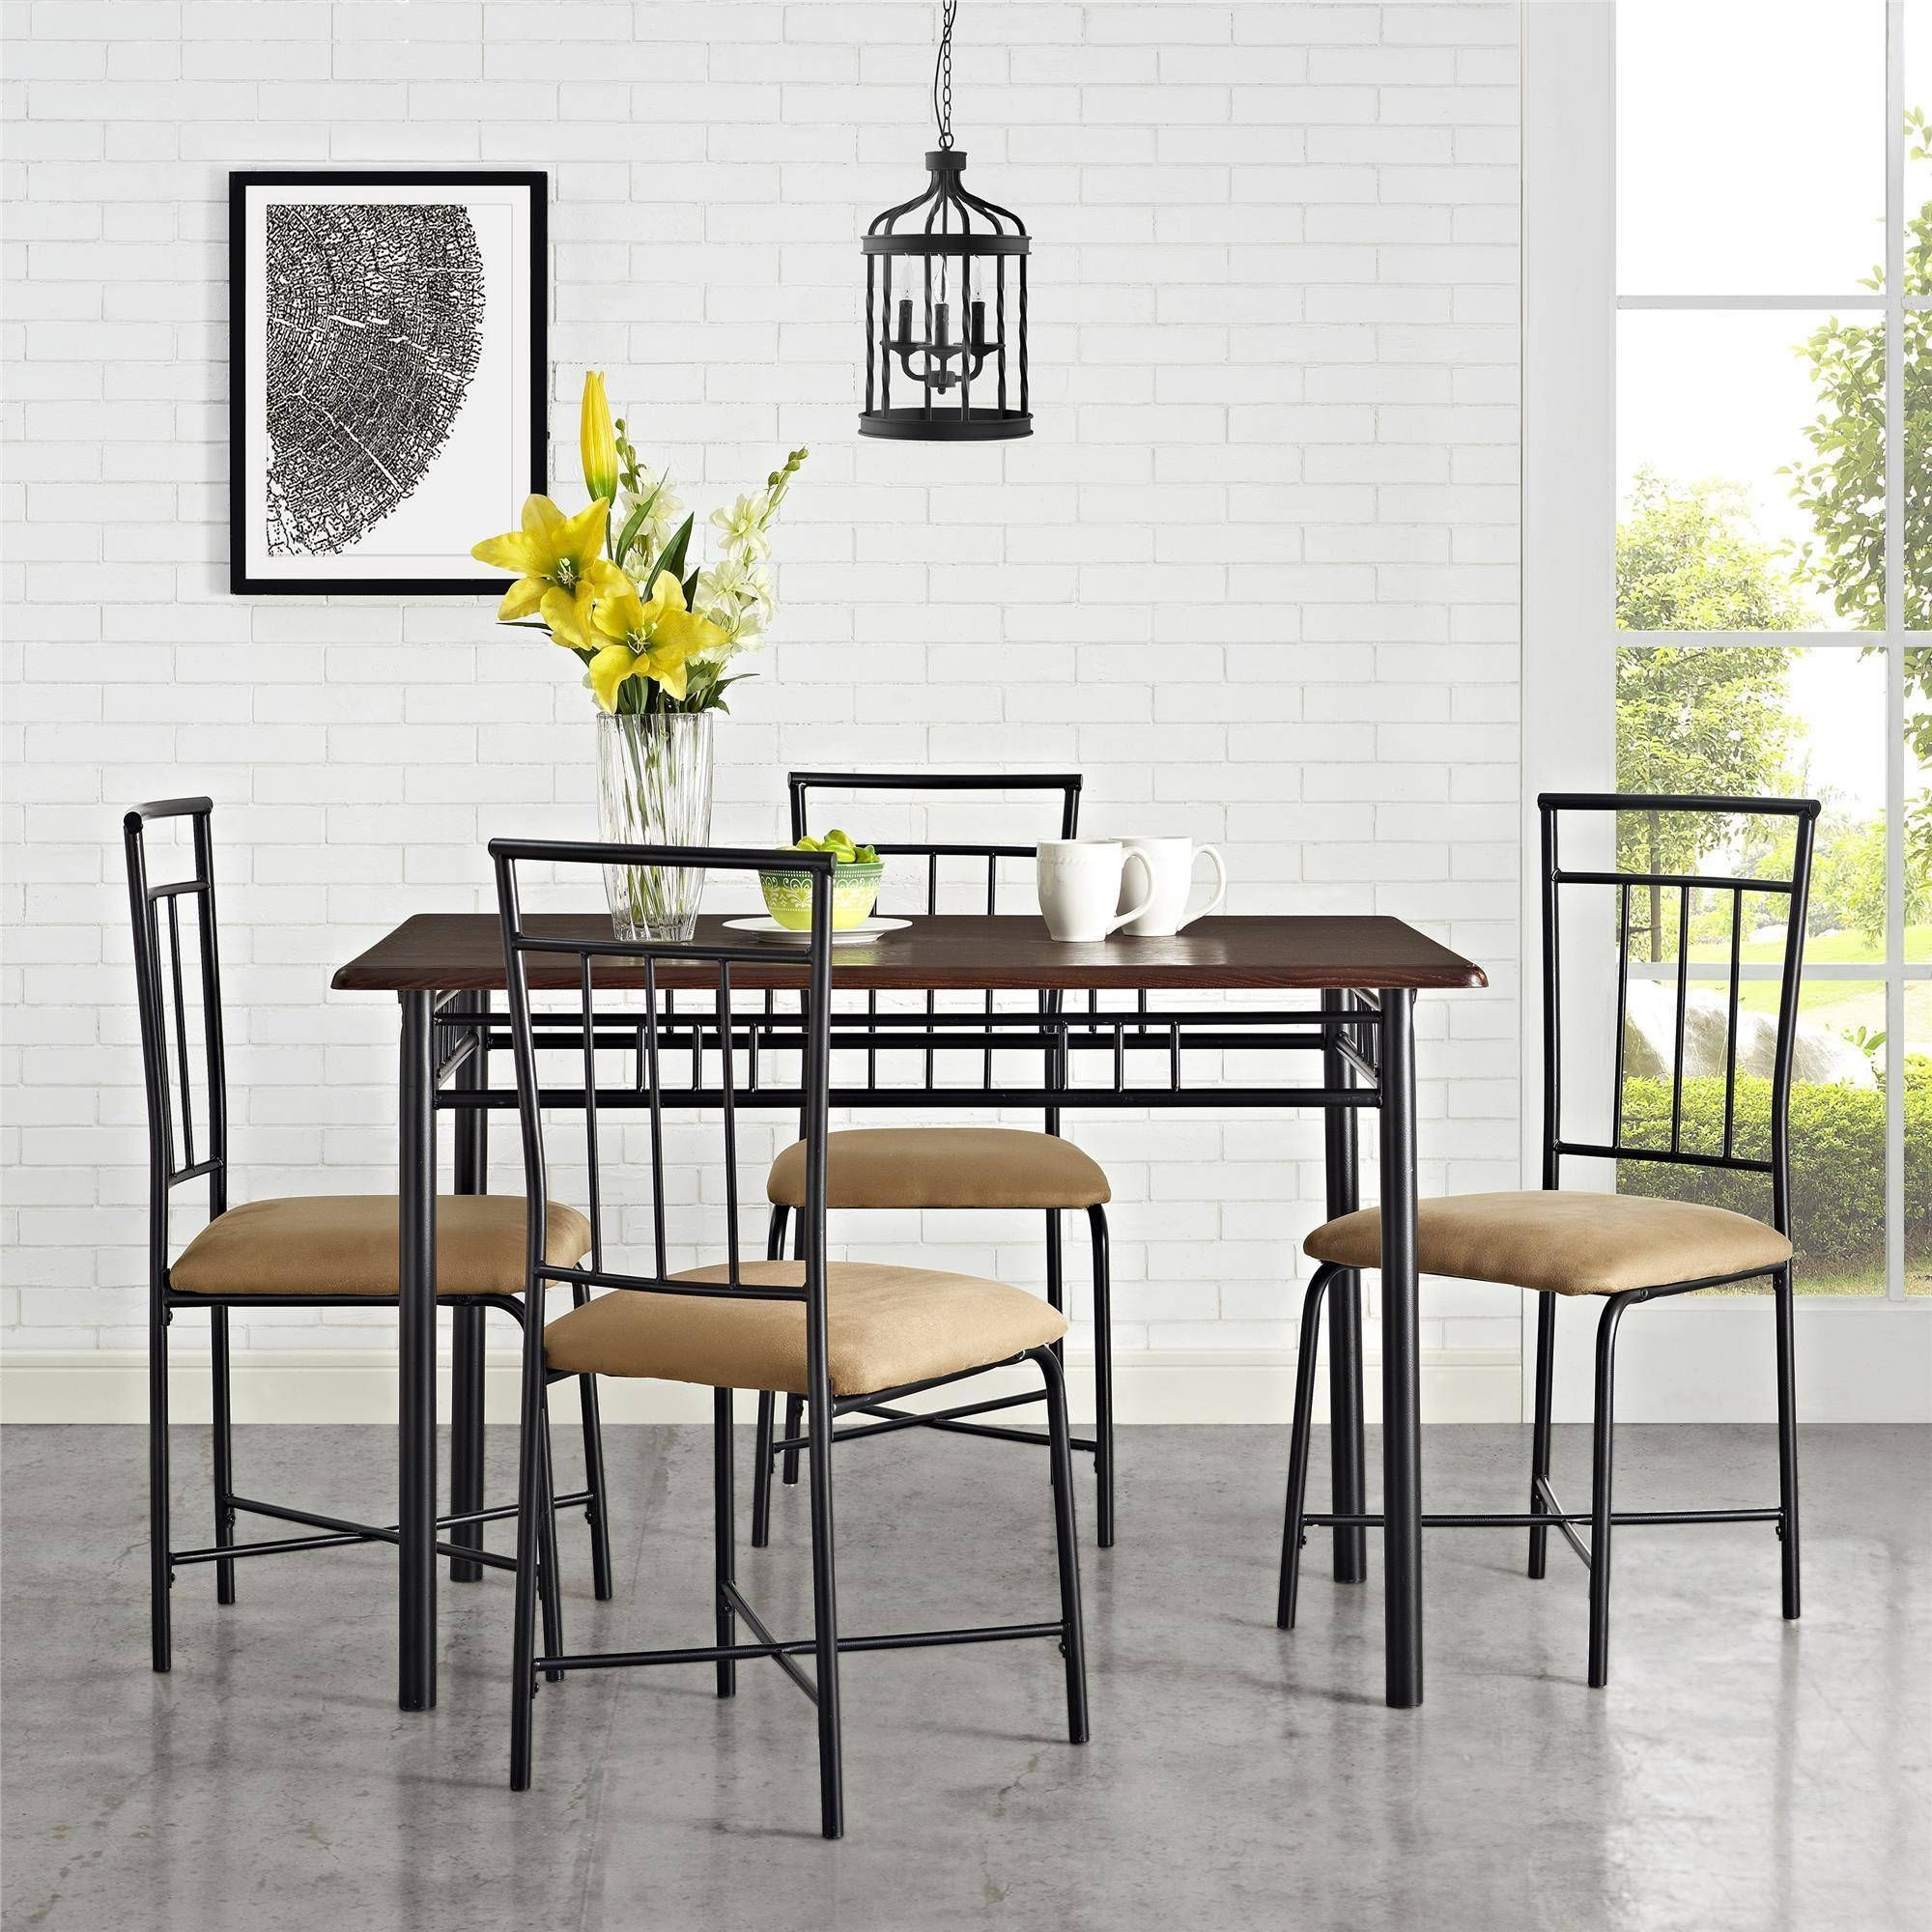 Mainstays 9 Piece Dining Set, Multiple Colors   Walmart.com in ...